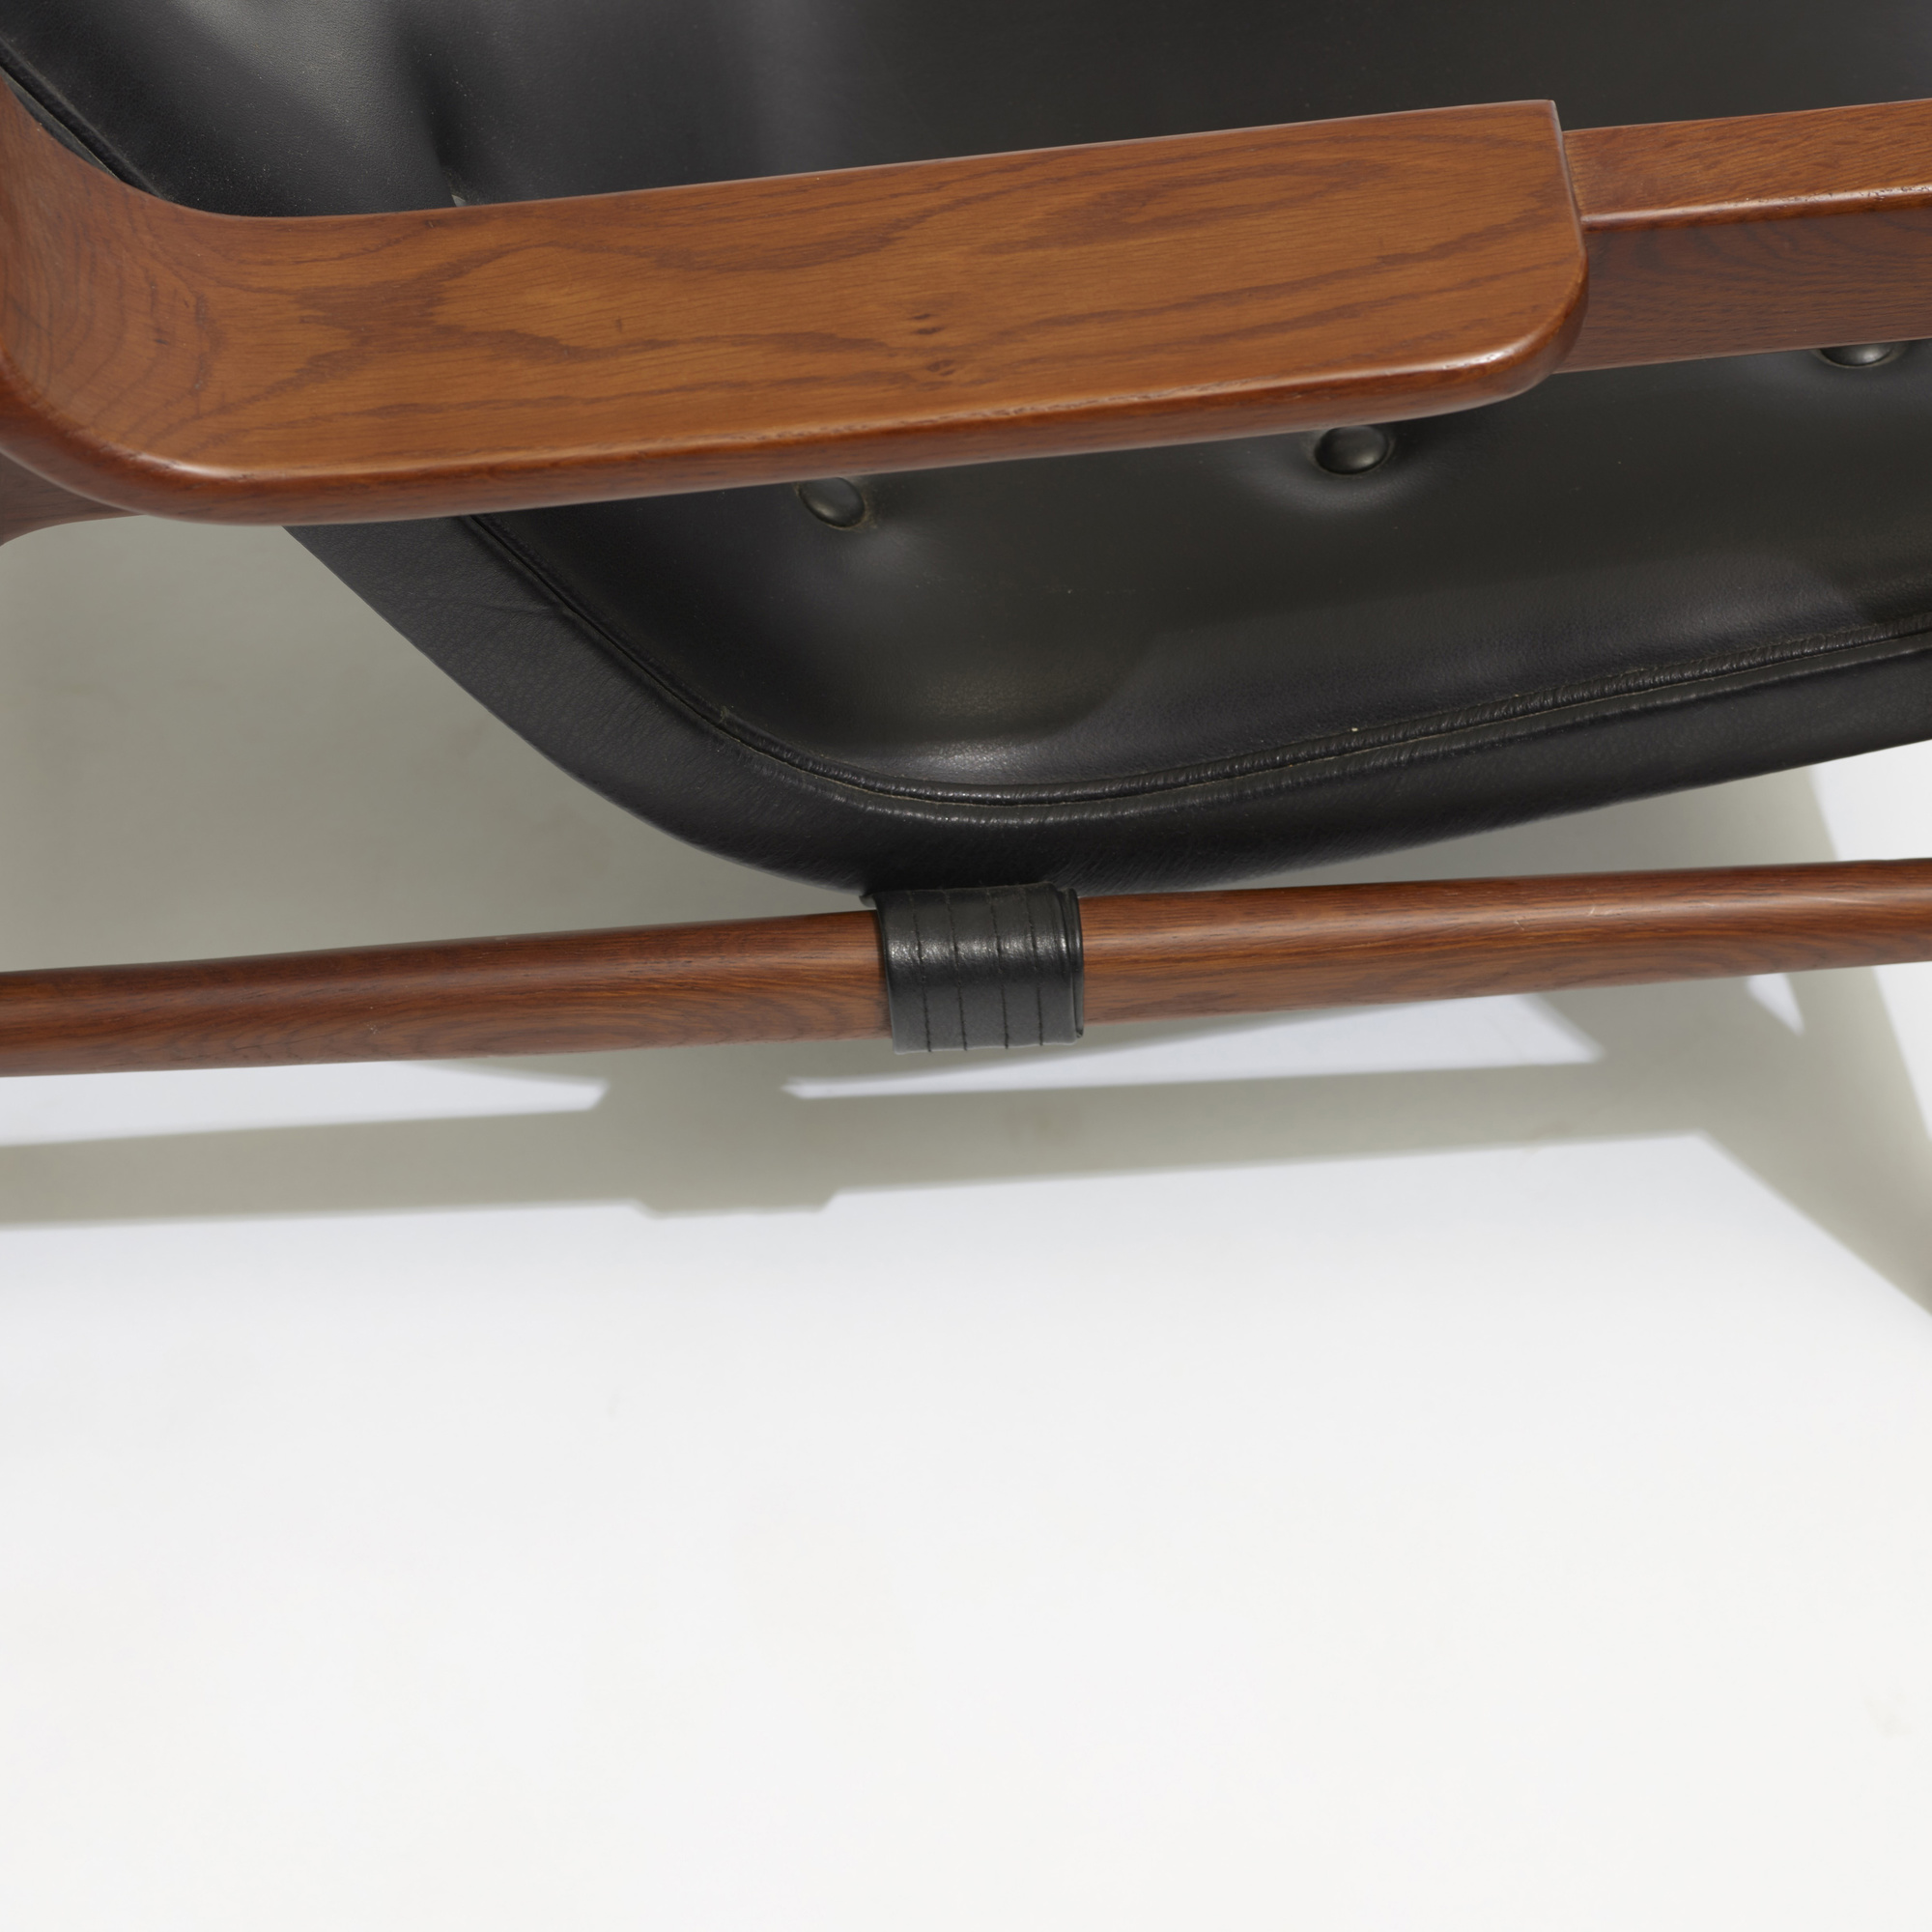 386: Edvard and Tove Kindt-Larsen / lounge chair (3 of 4)